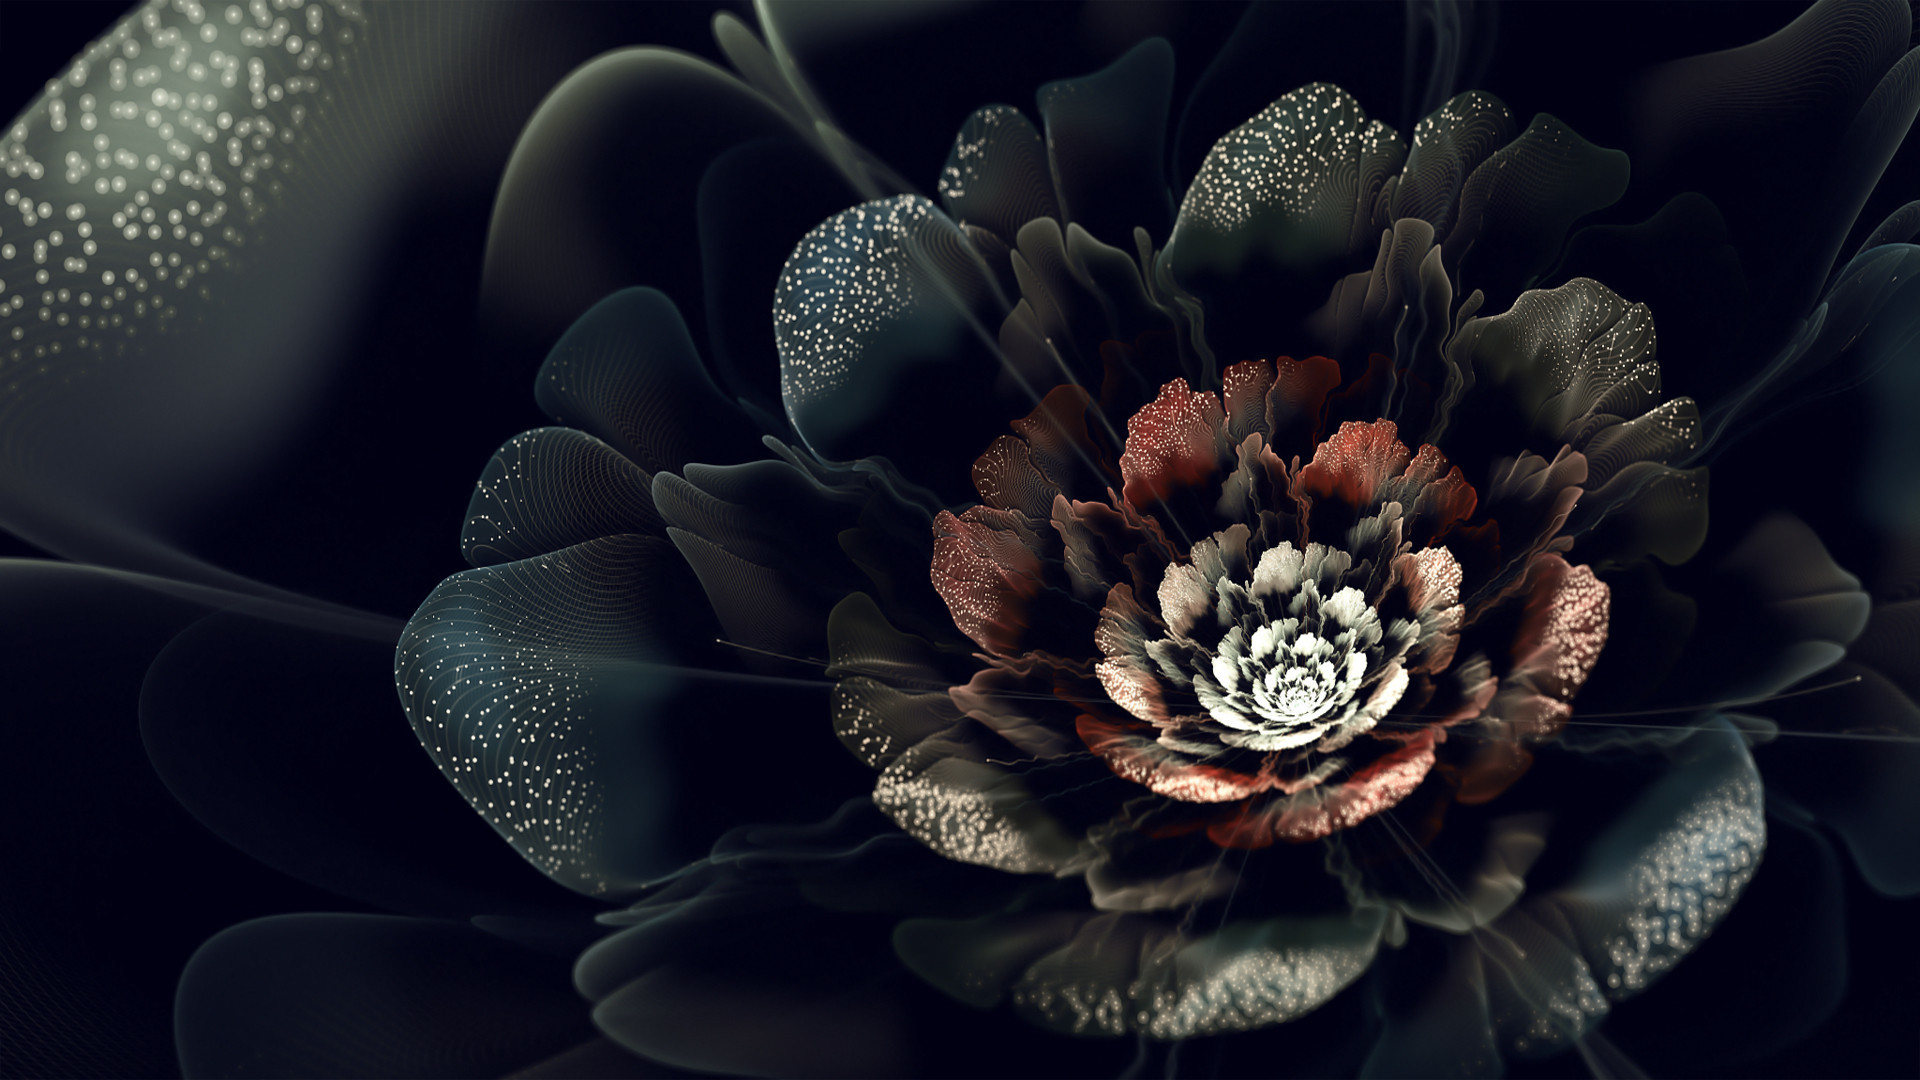 Dark Roses Hd Wallpapers: Flowers On Black Background Wallpaper (77+ Images